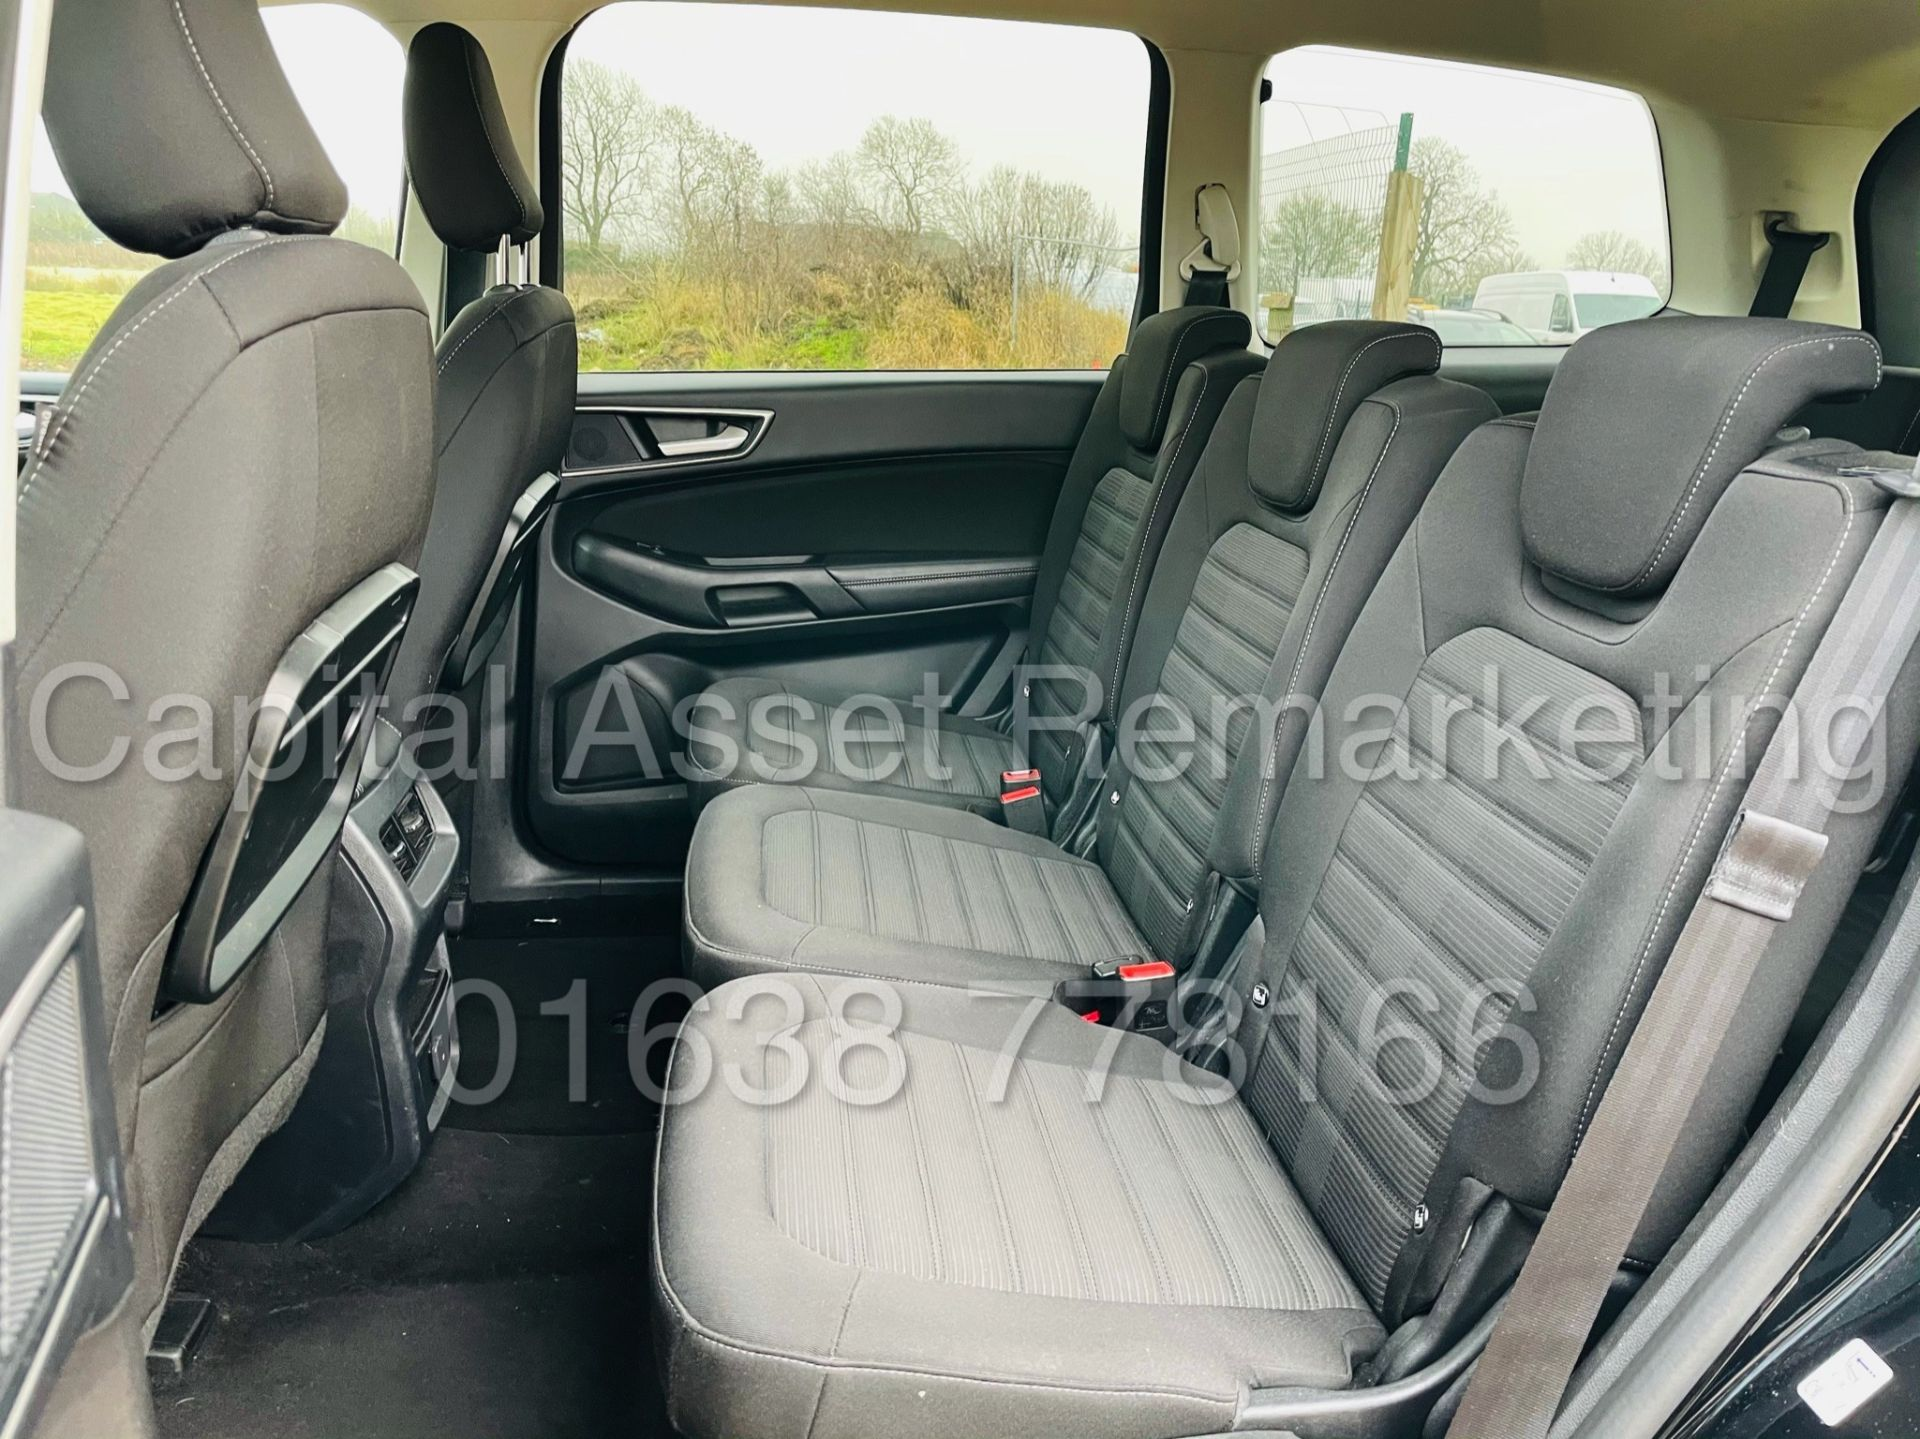 (On Sale) FORD GALAXY *ZETEC EDITION* 7 SEATER MPV (2017 - EURO 6) '2.0 TDCI - AUTO' (1 OWNER) - Image 25 of 48